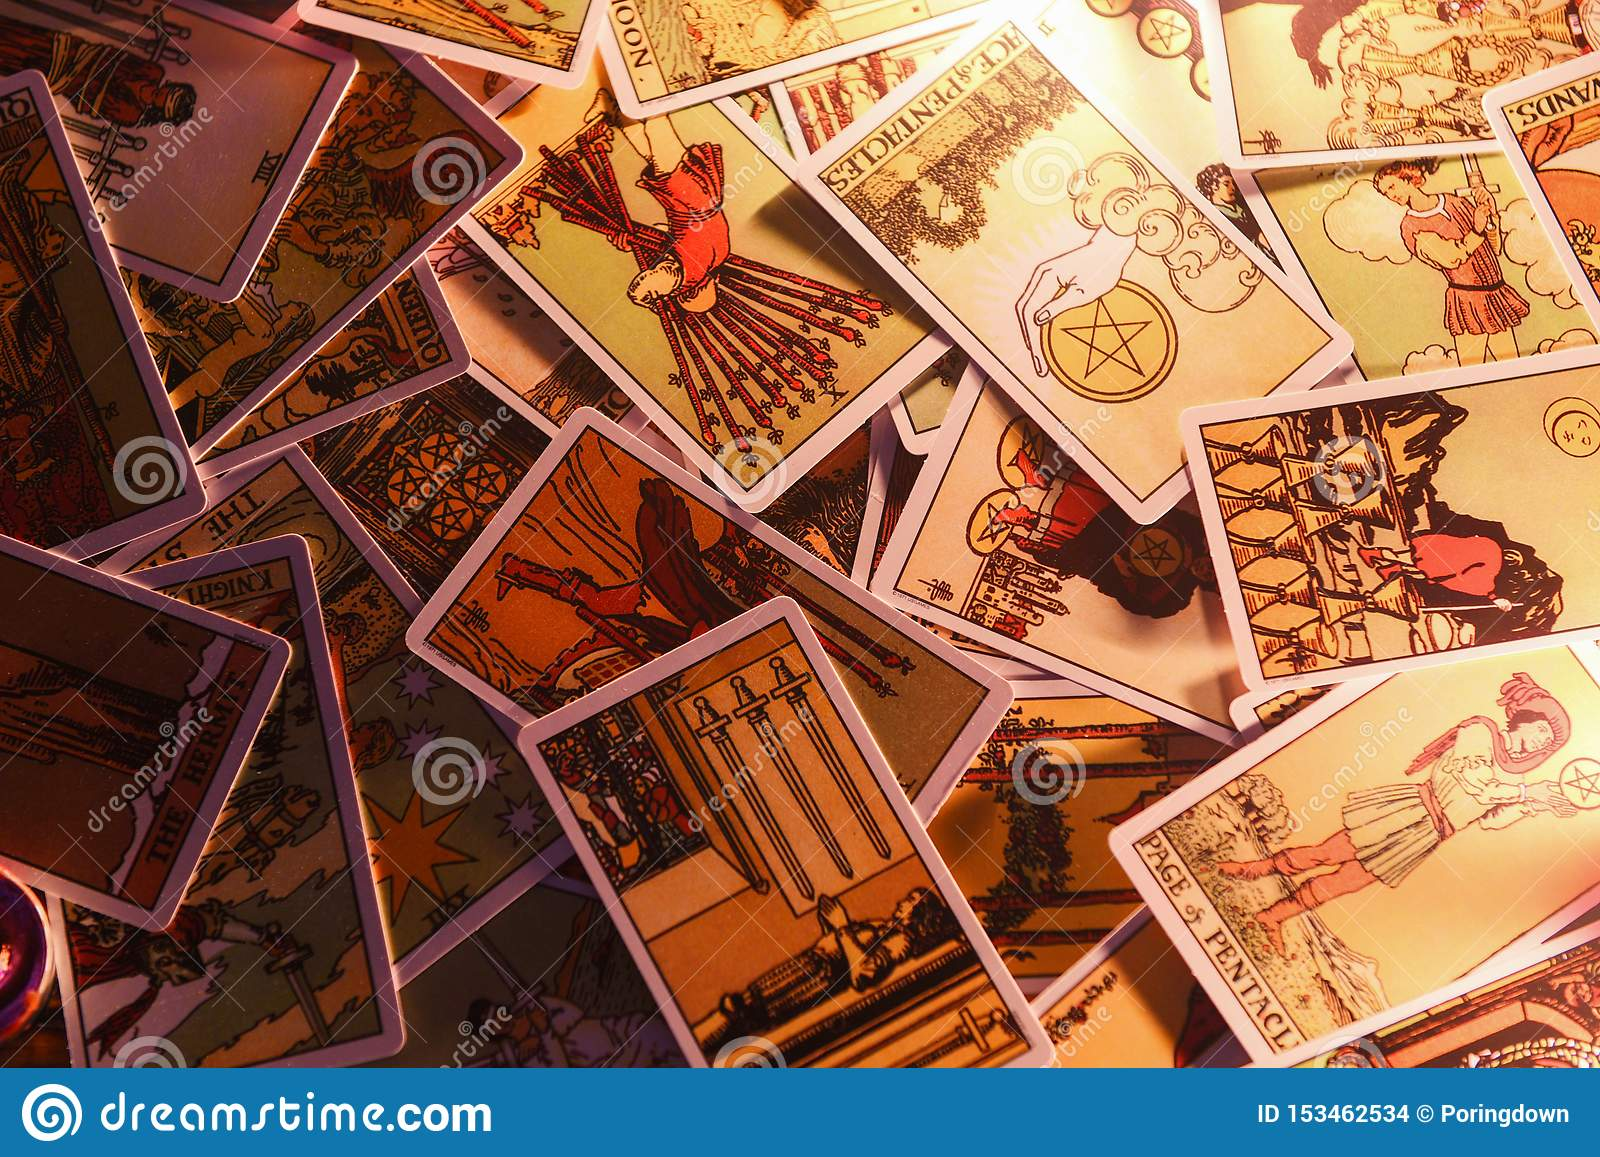 Tarot cards for tarot readings psychic as well divination